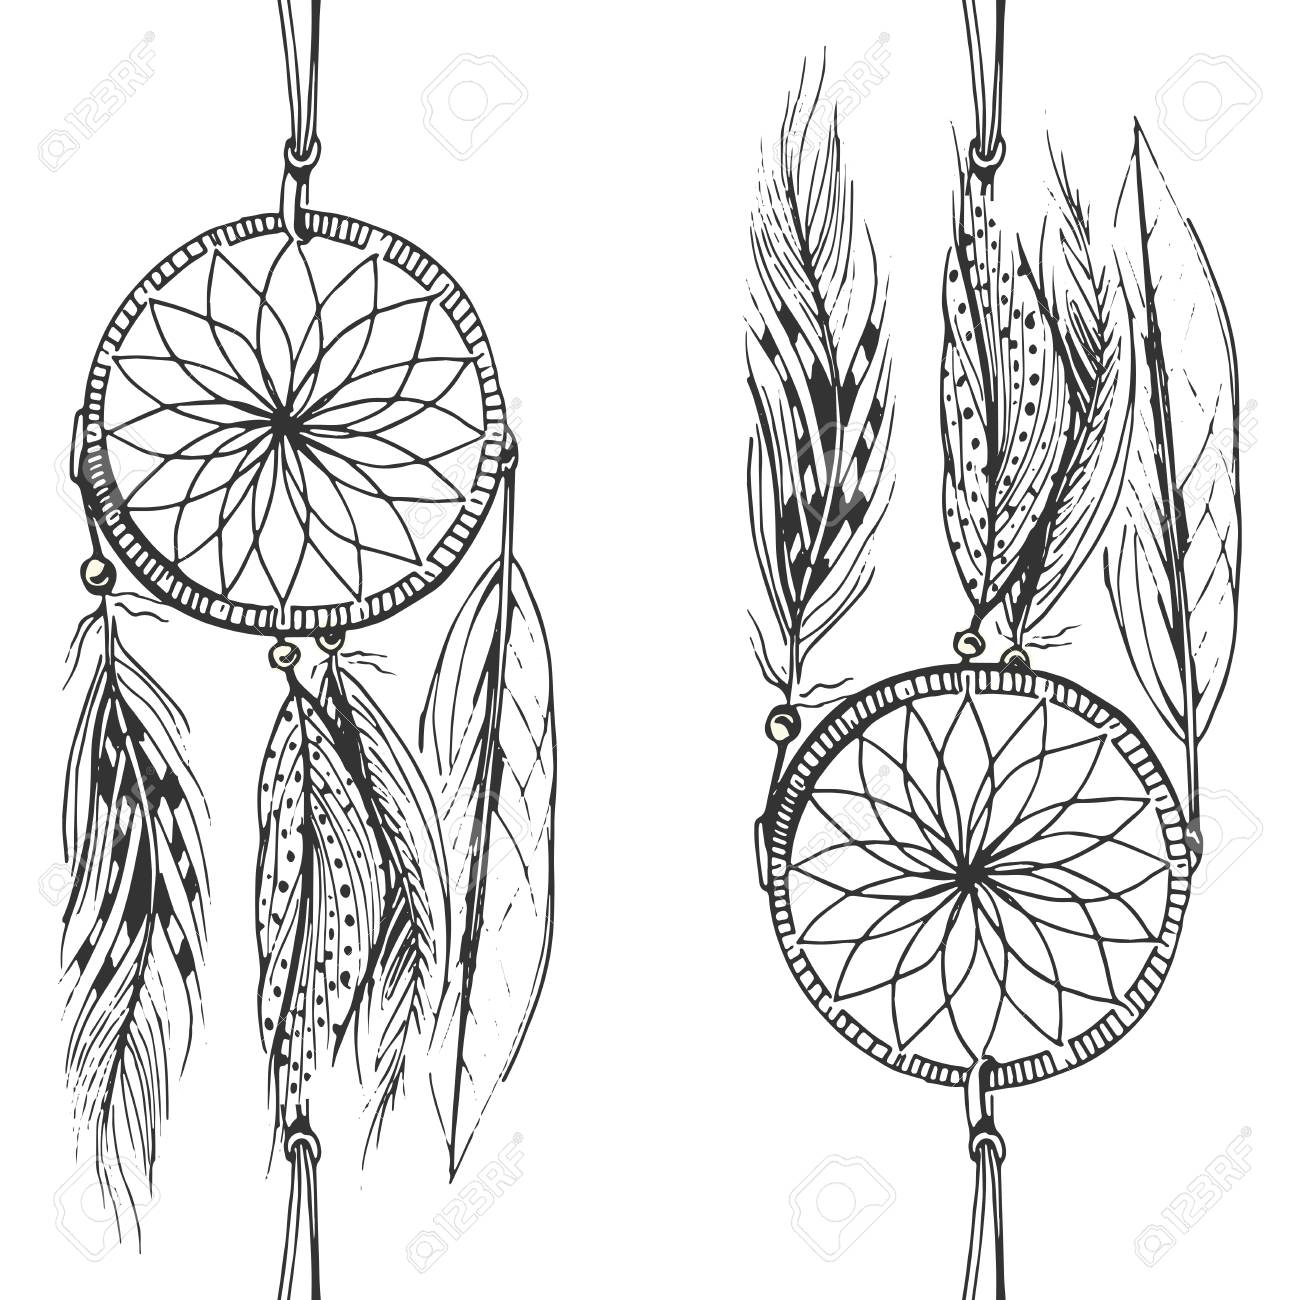 Vector Illustration Of Black And White Dream Catcher Pattern Royalty Free Cliparts Vectors And Stock Illustration Image 95728710